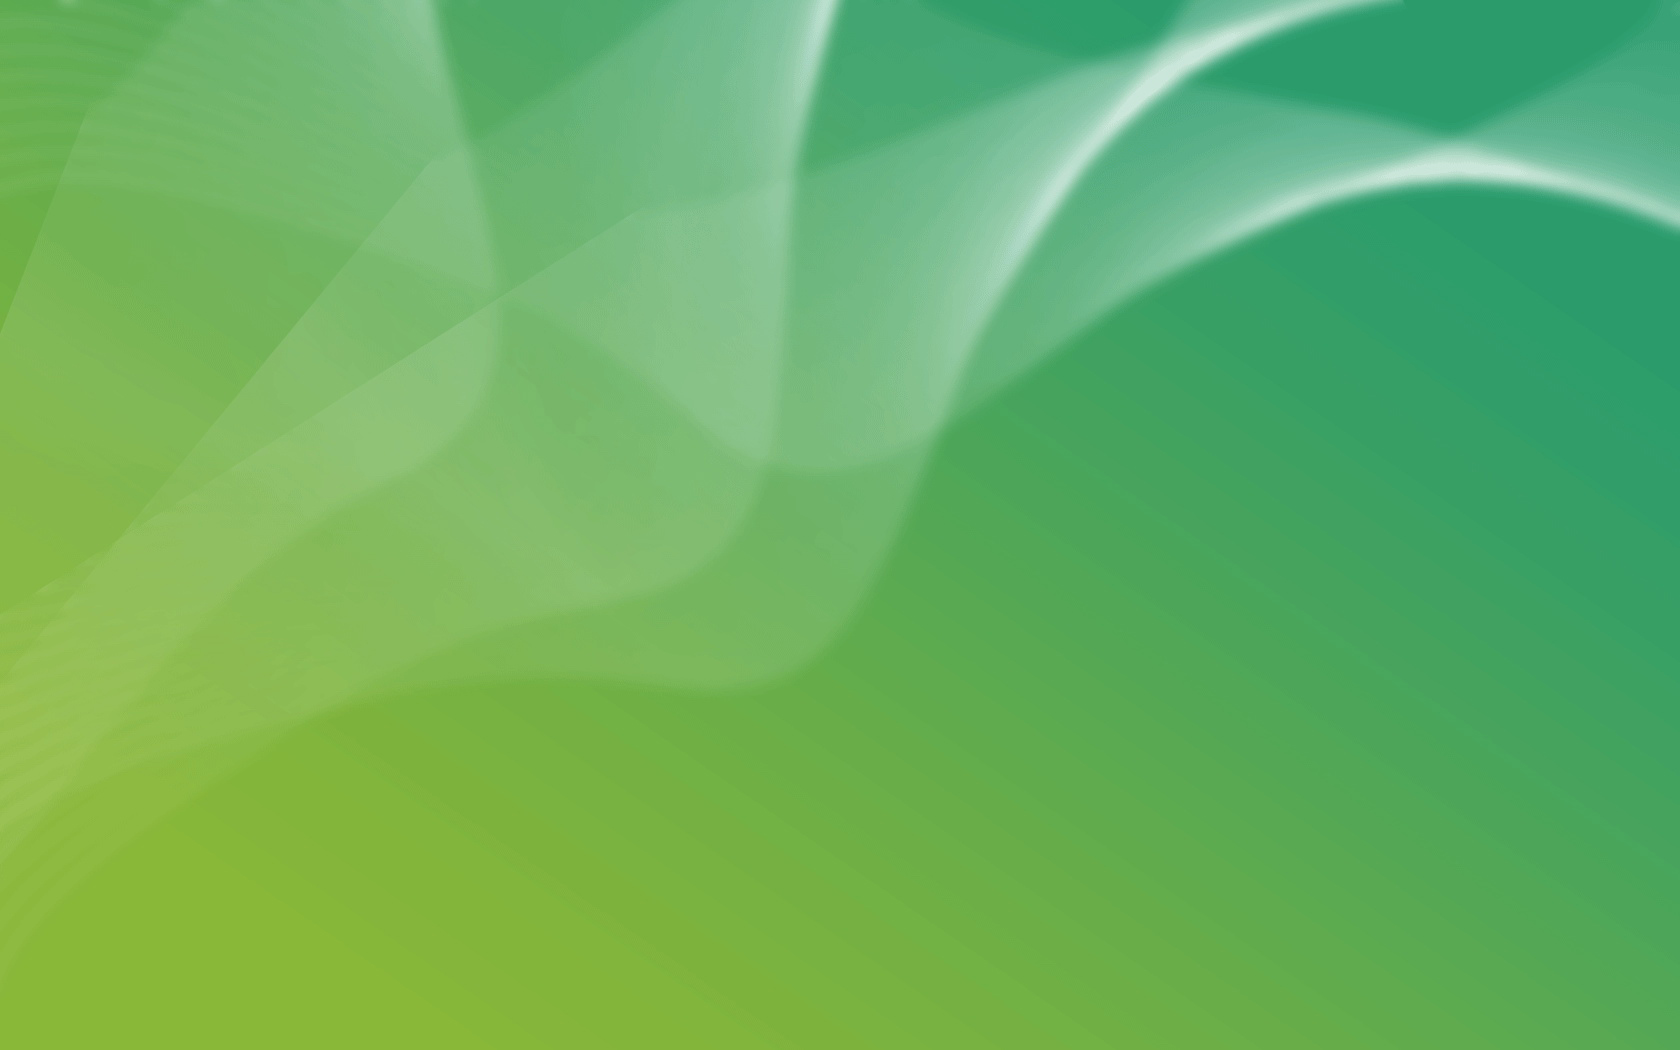 Green beautiful color colorful desktop background wallpaper Abstract 1680x1050